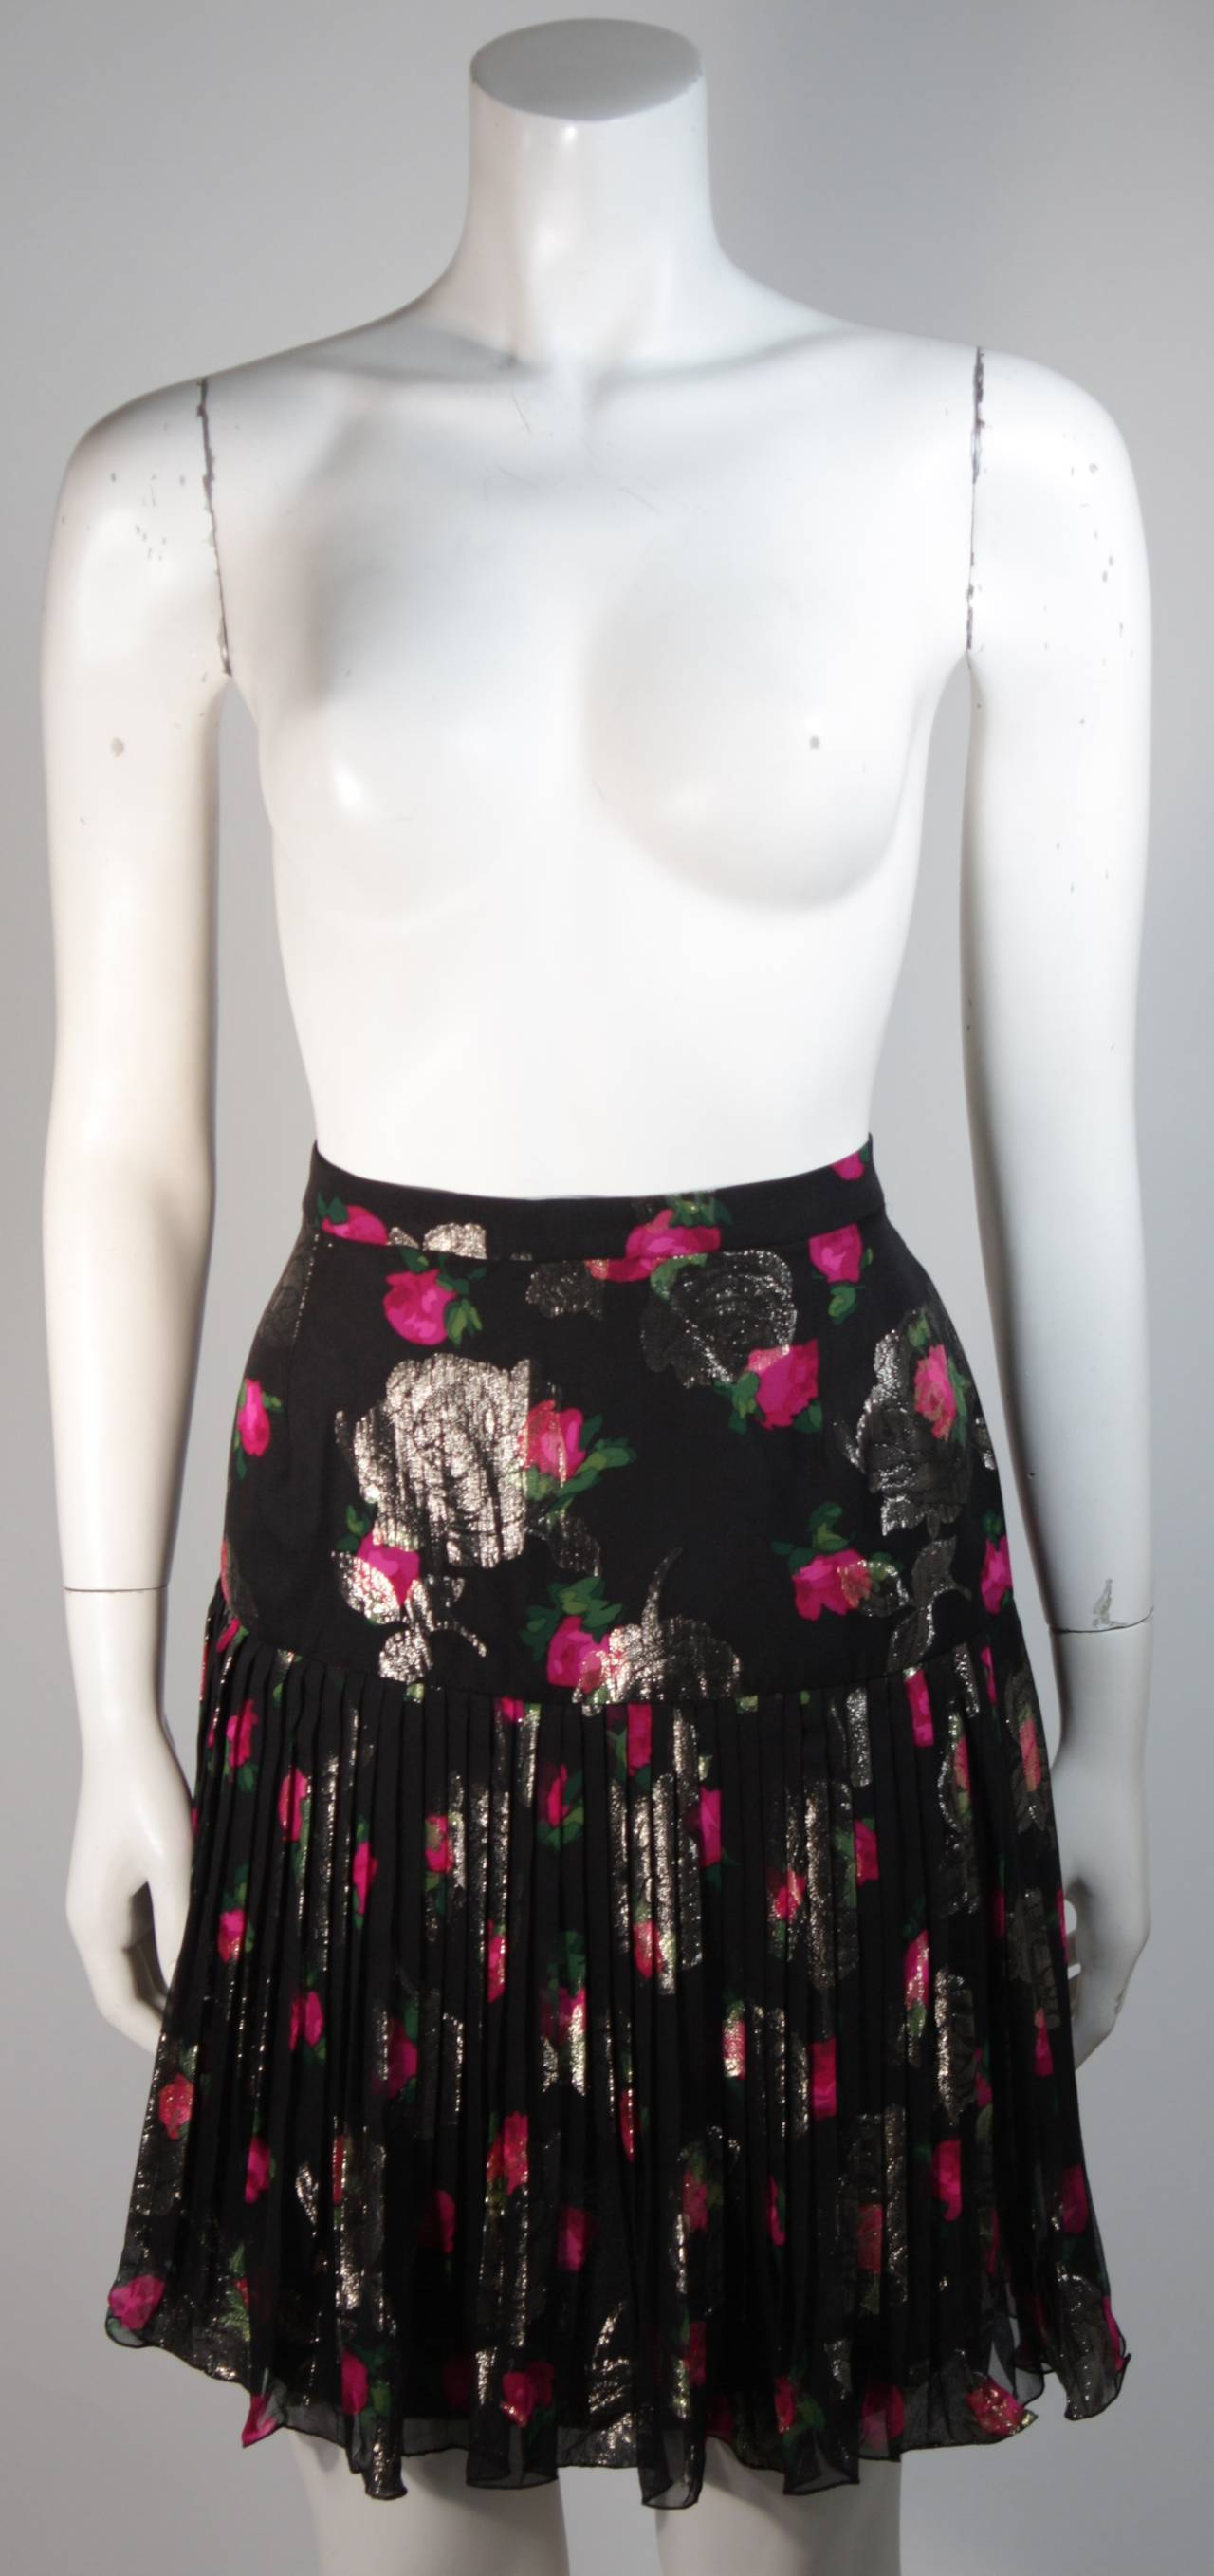 Vicky Tiel Black SilkSuit with Floral Motif and Pleated Chiffon Skirt Size Small For Sale 5